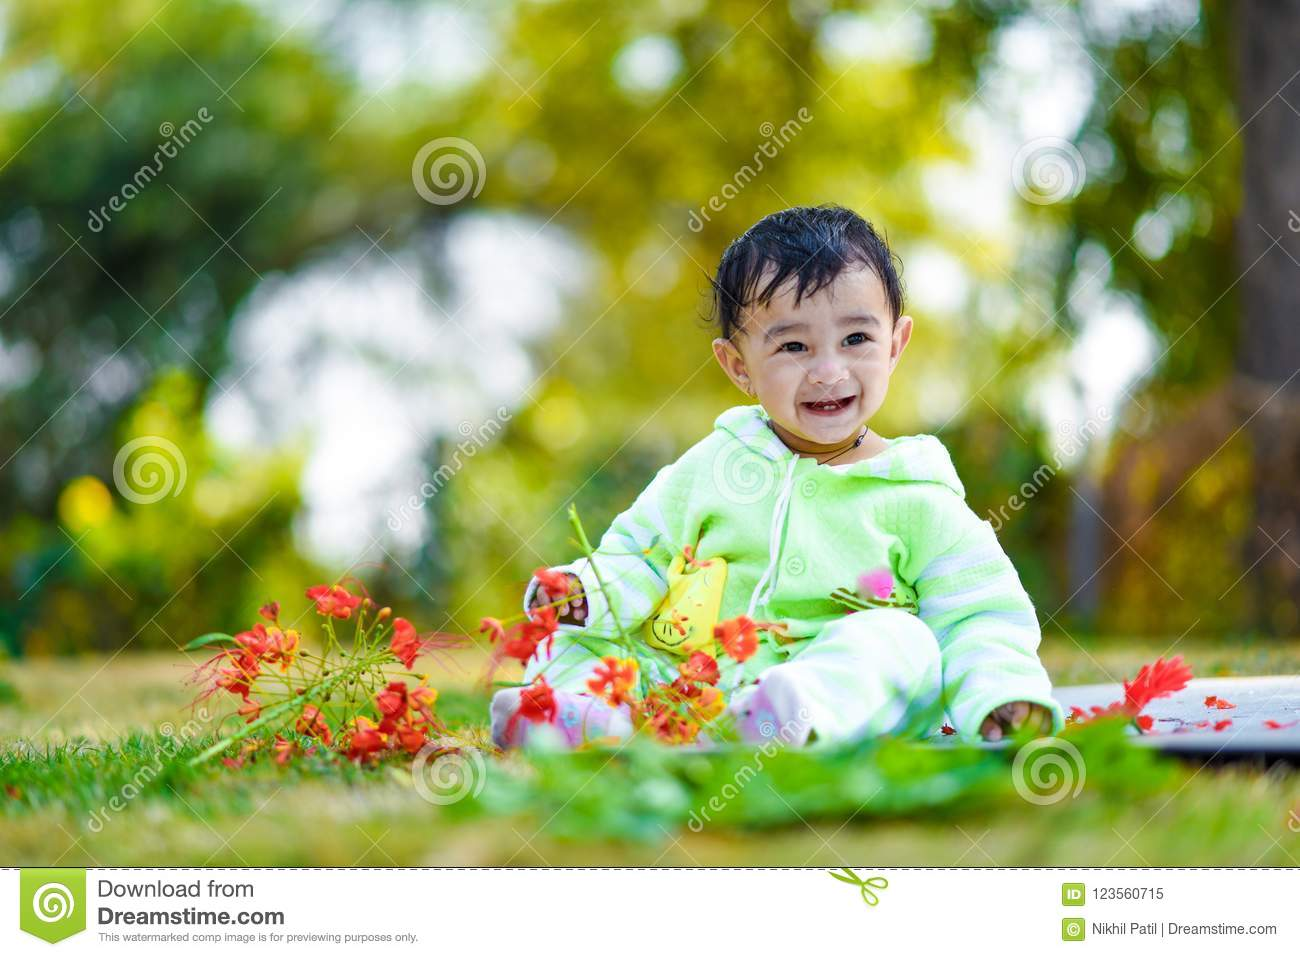 Cute Indian Baby Boy Playing At Garden Stock Image Image Of Grass Beauty 123560715